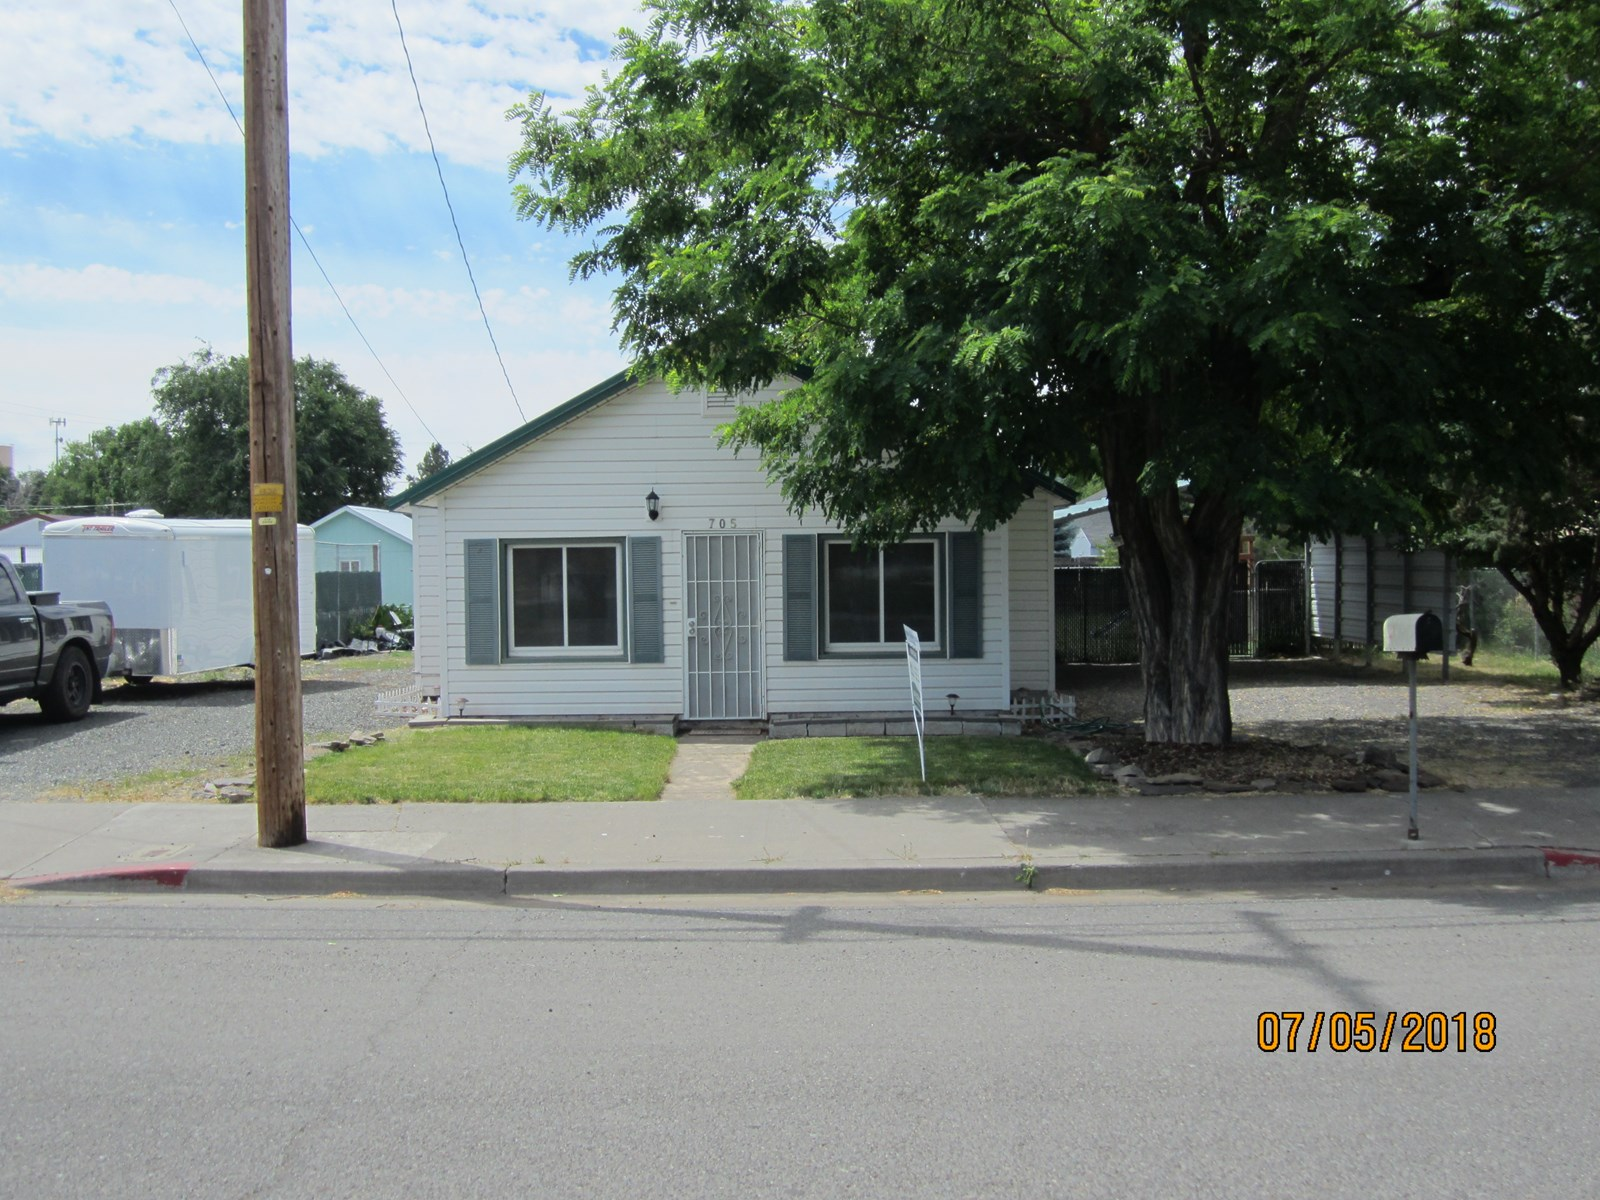 3 bed/1 bath 1096 sq. ft home in town of Alturas, Ca.